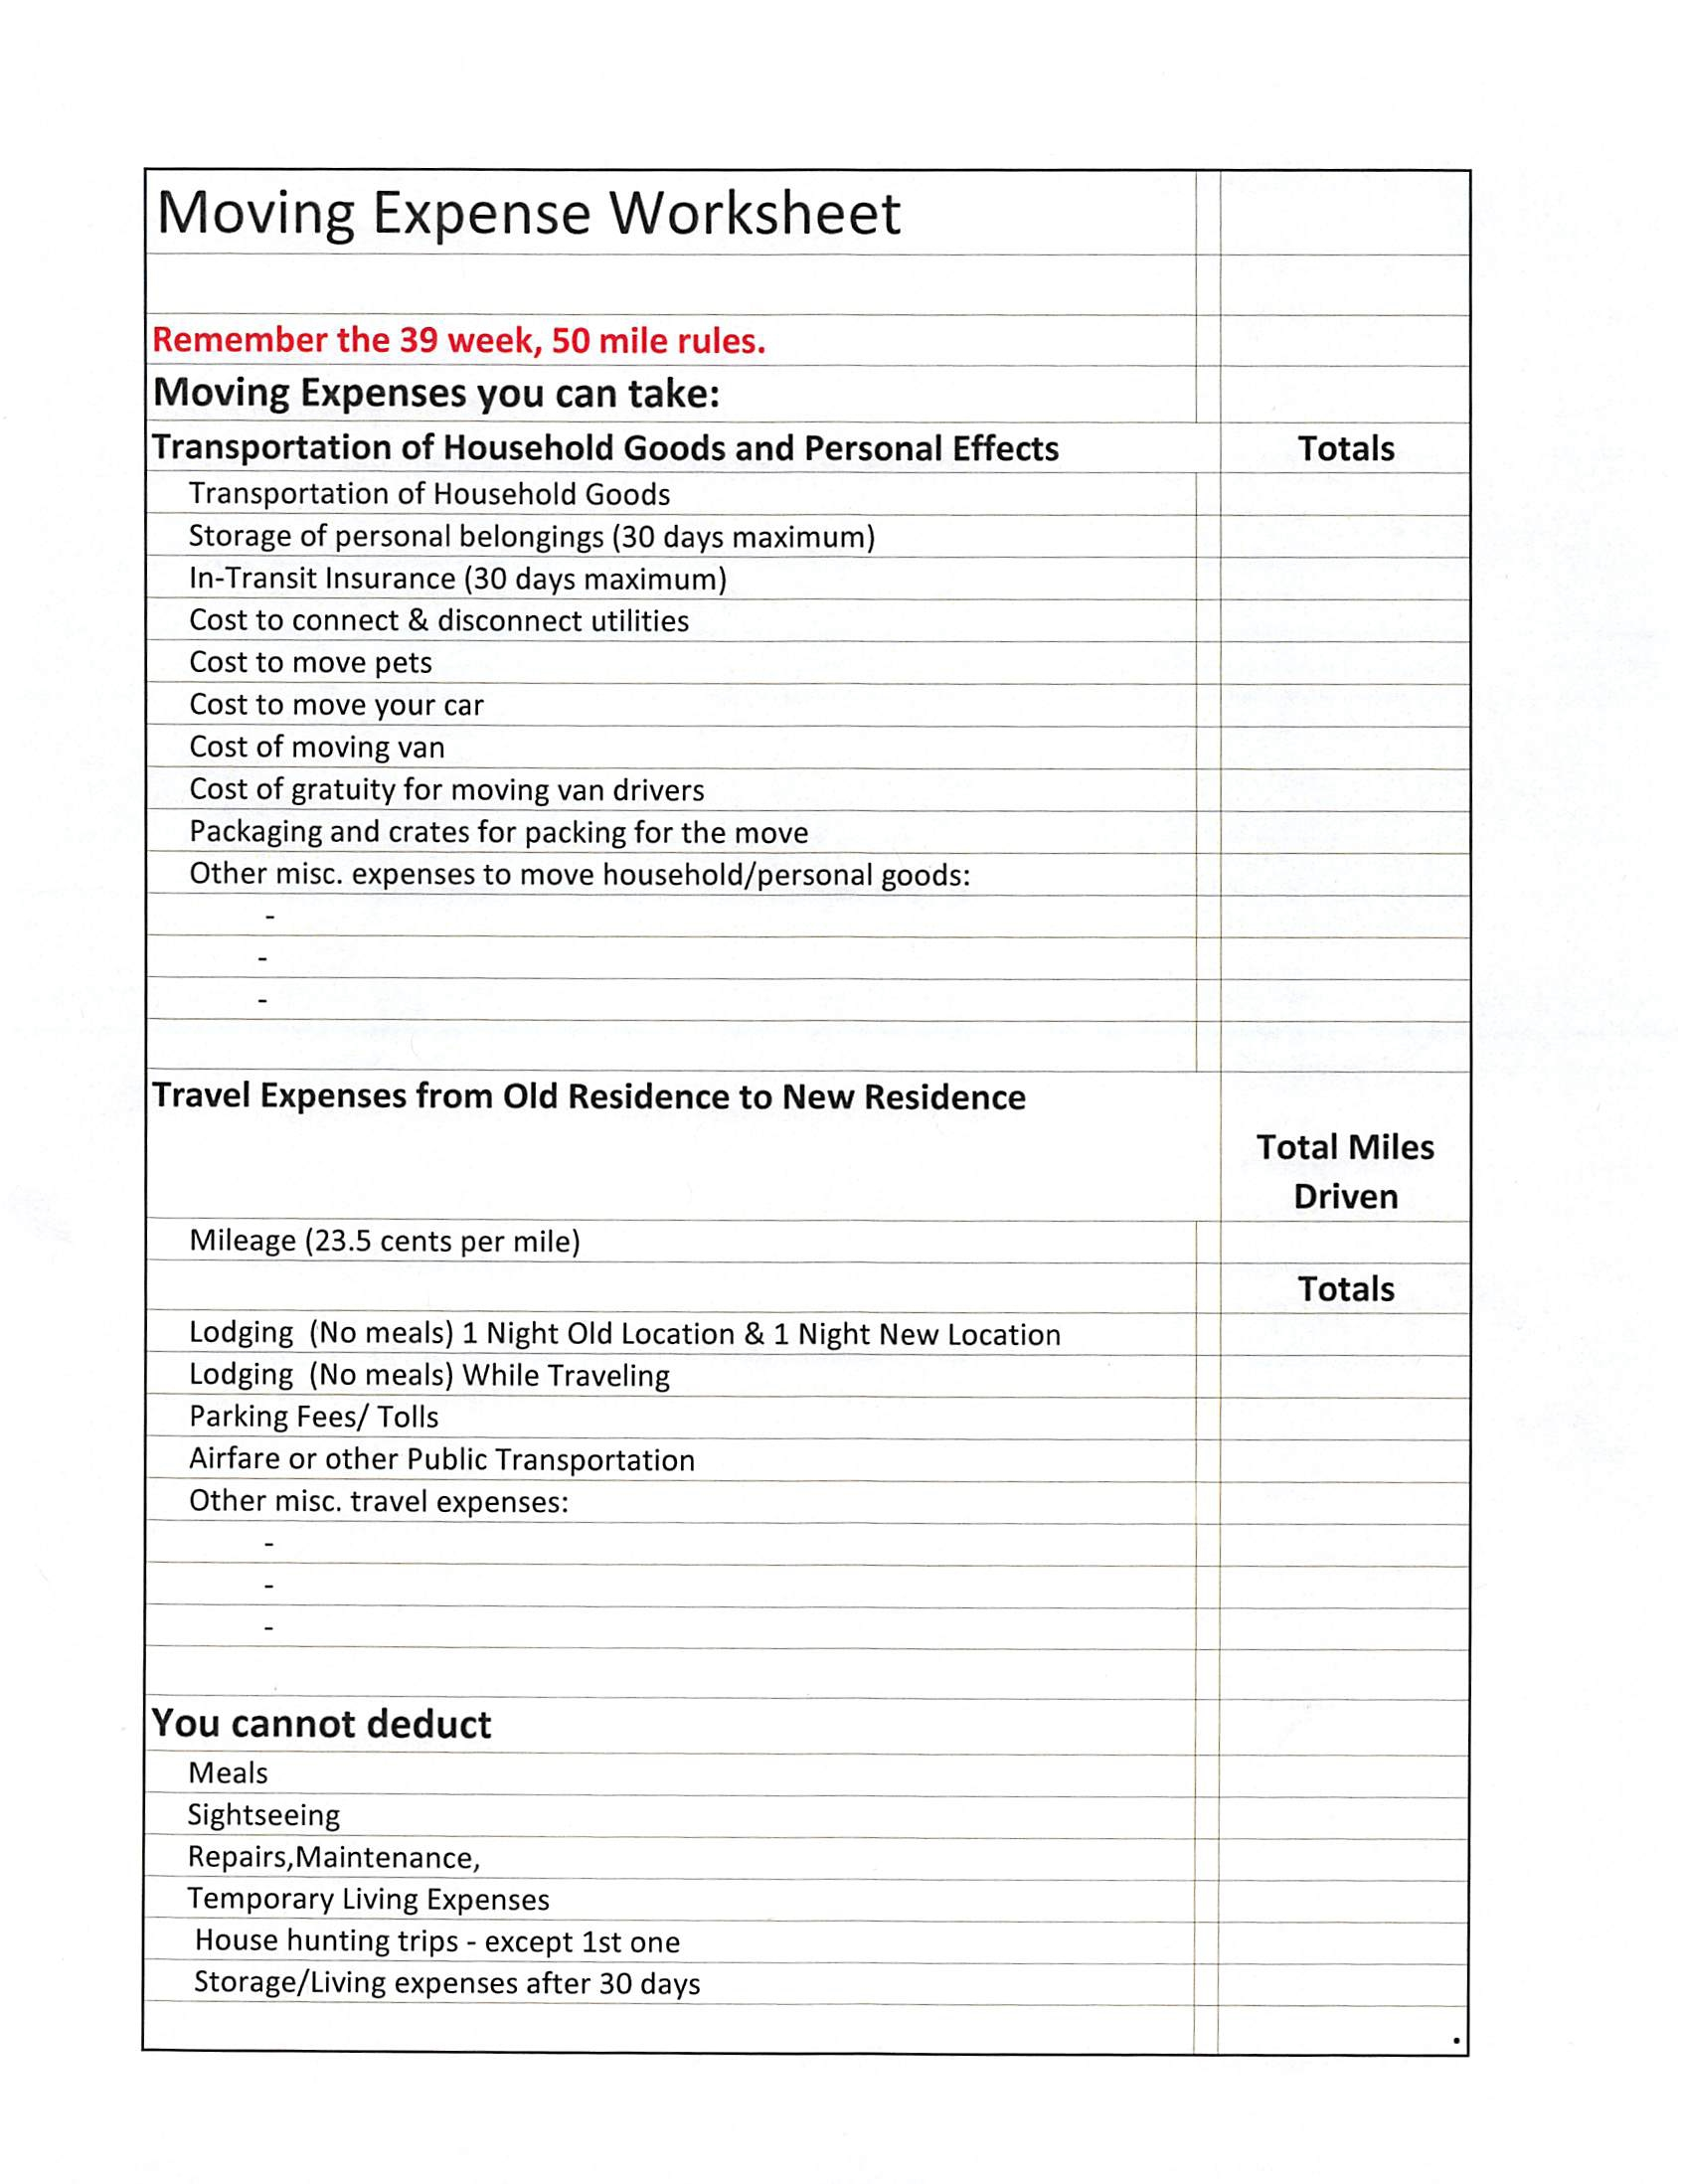 California Itemized Deduction Worksheet Cptcode